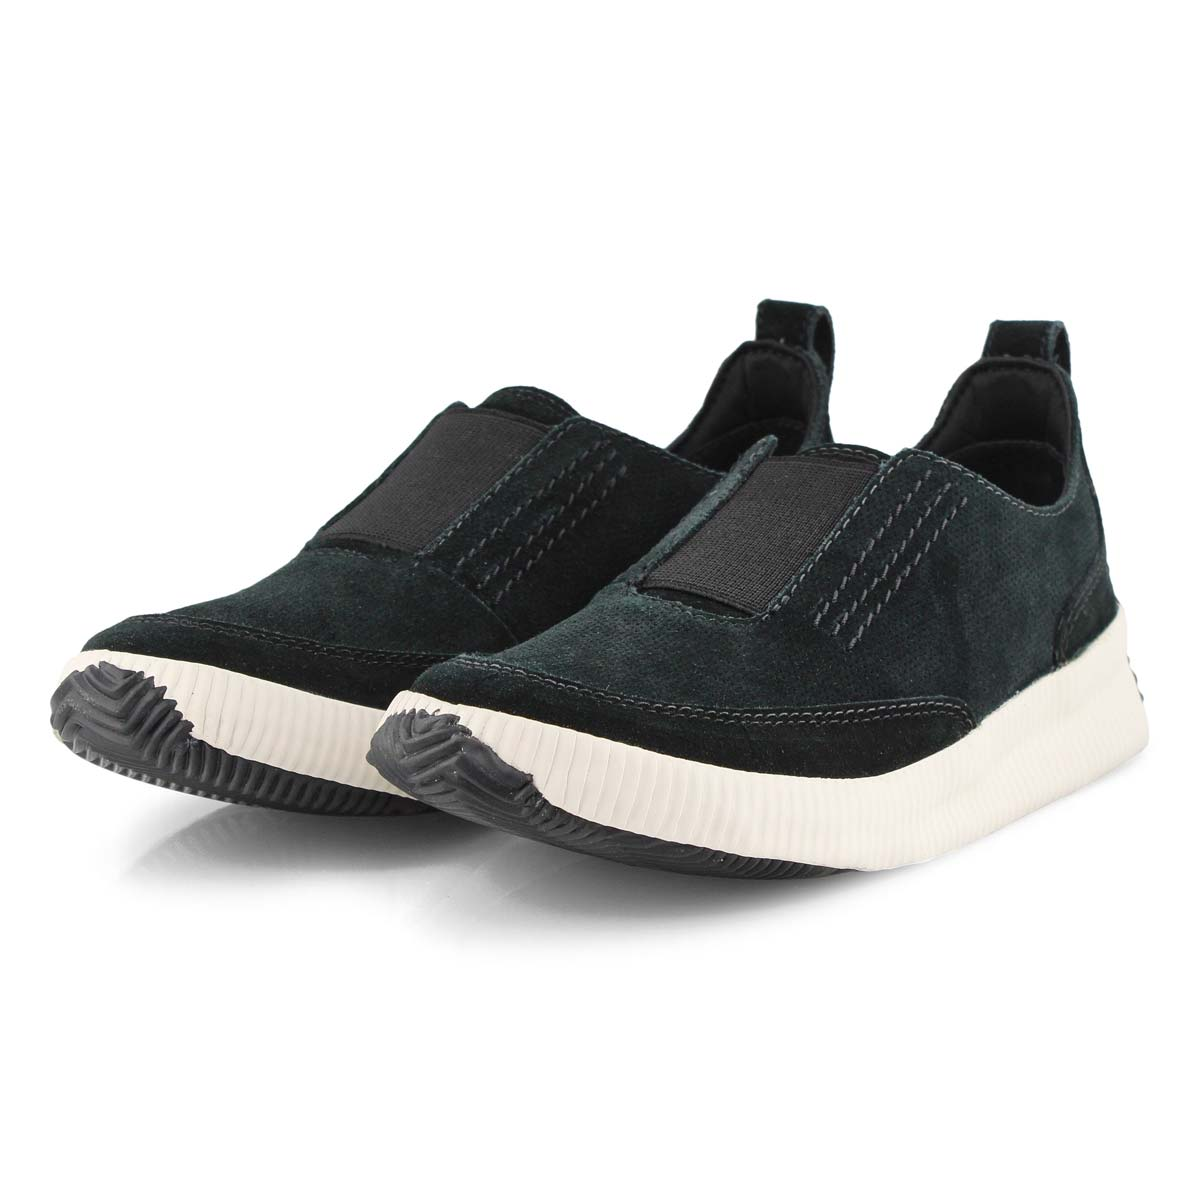 Lds Out N About Plus Slip blk sneaker